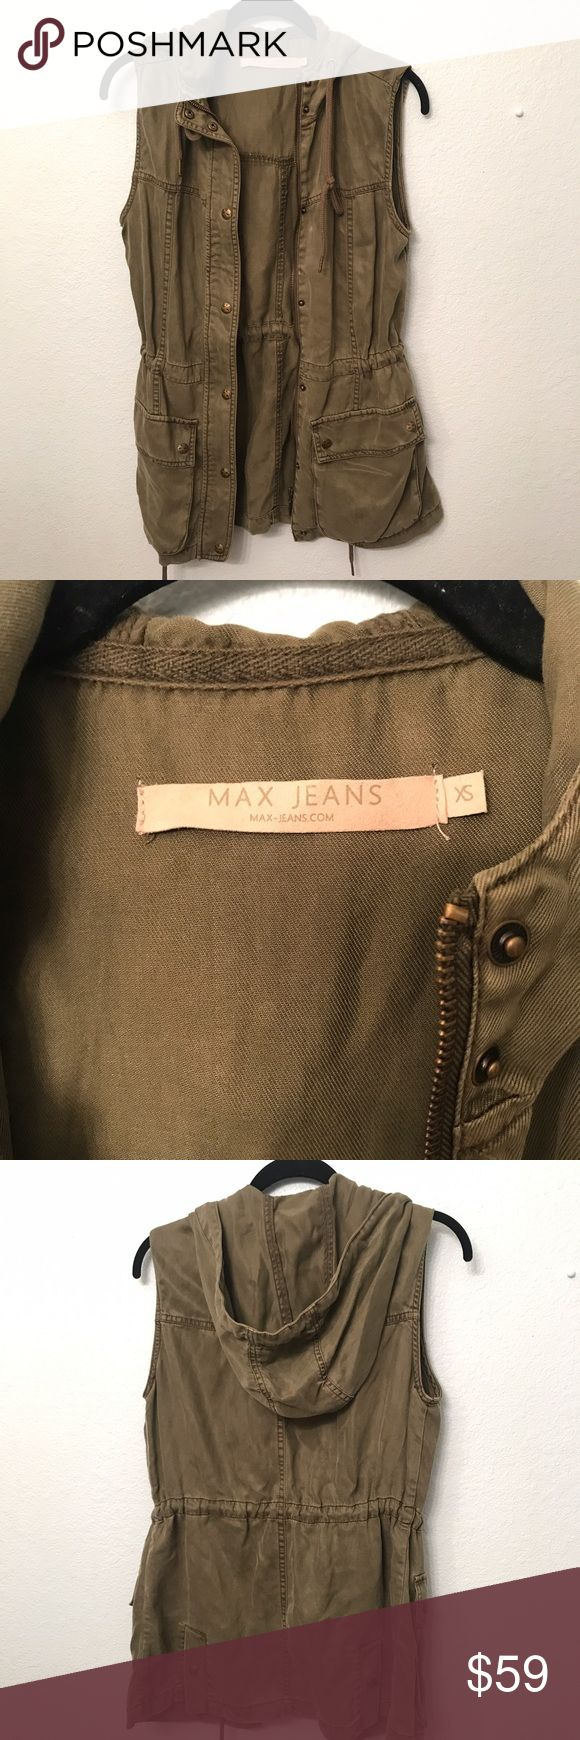 Max-Jeans Hooded Vest Khaki vest with button front closure Max Jeans Jackets & Coats Vests